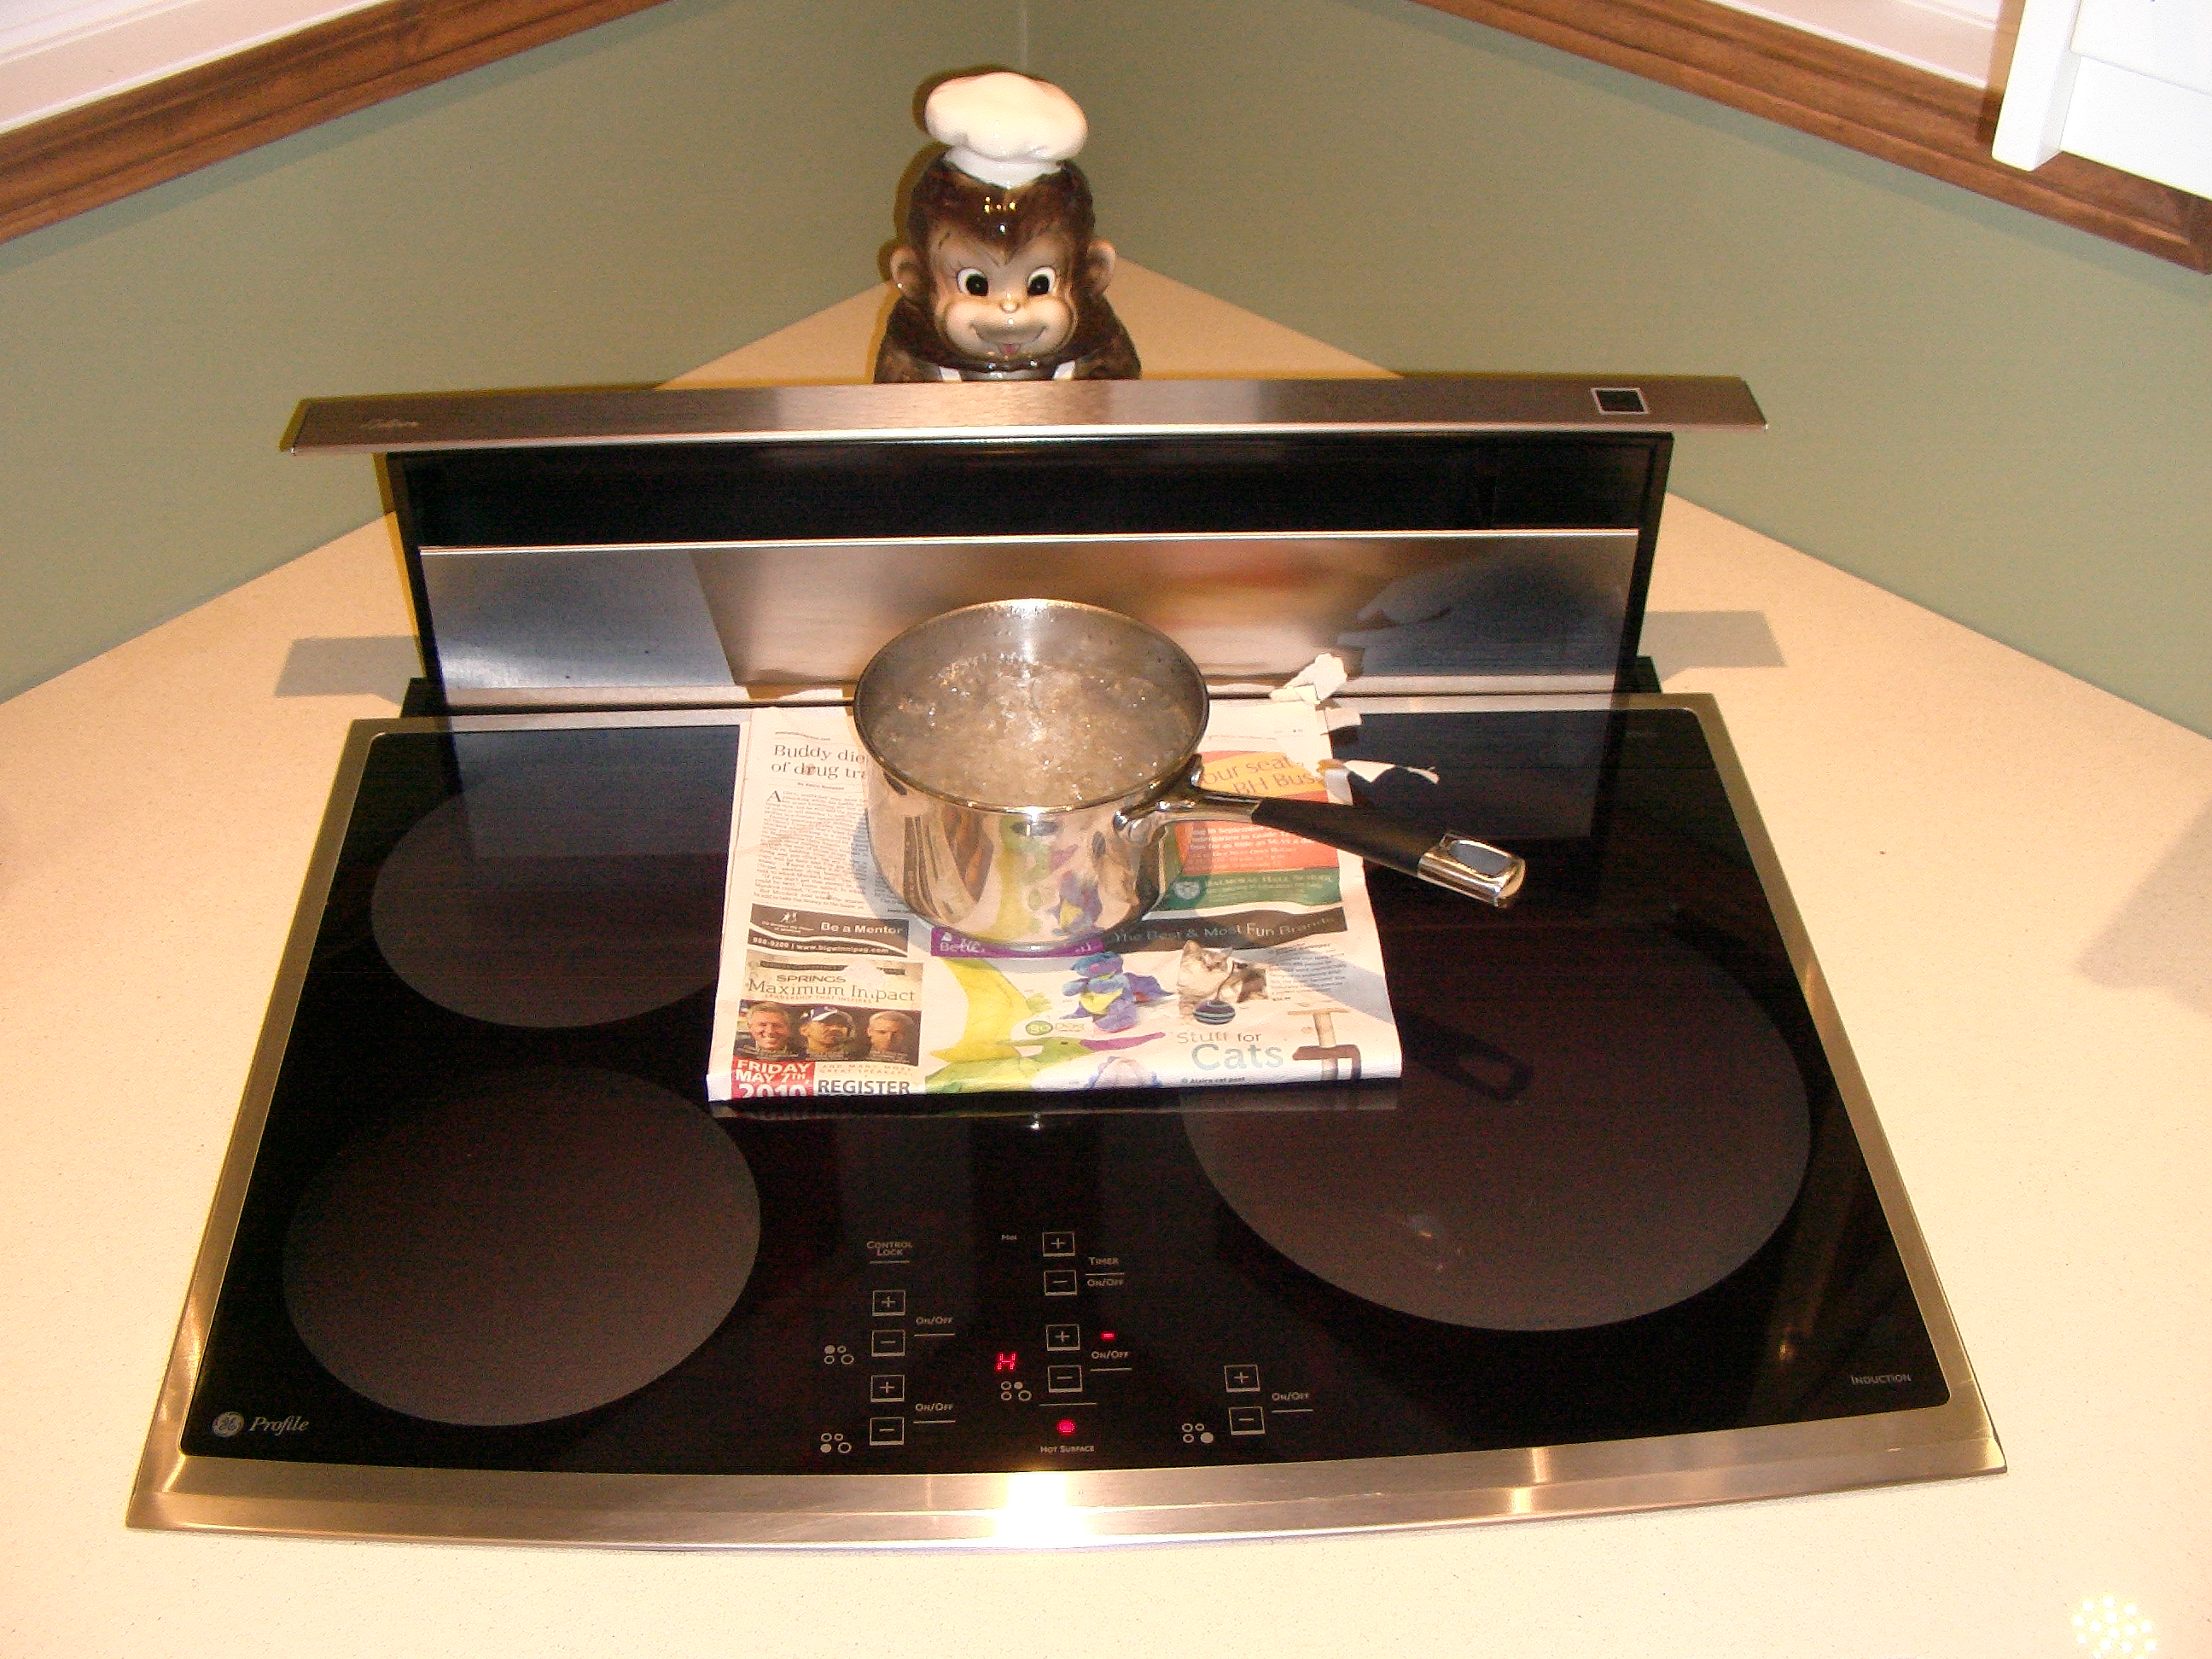 An induction cooktop boiling water through several thicknesses of